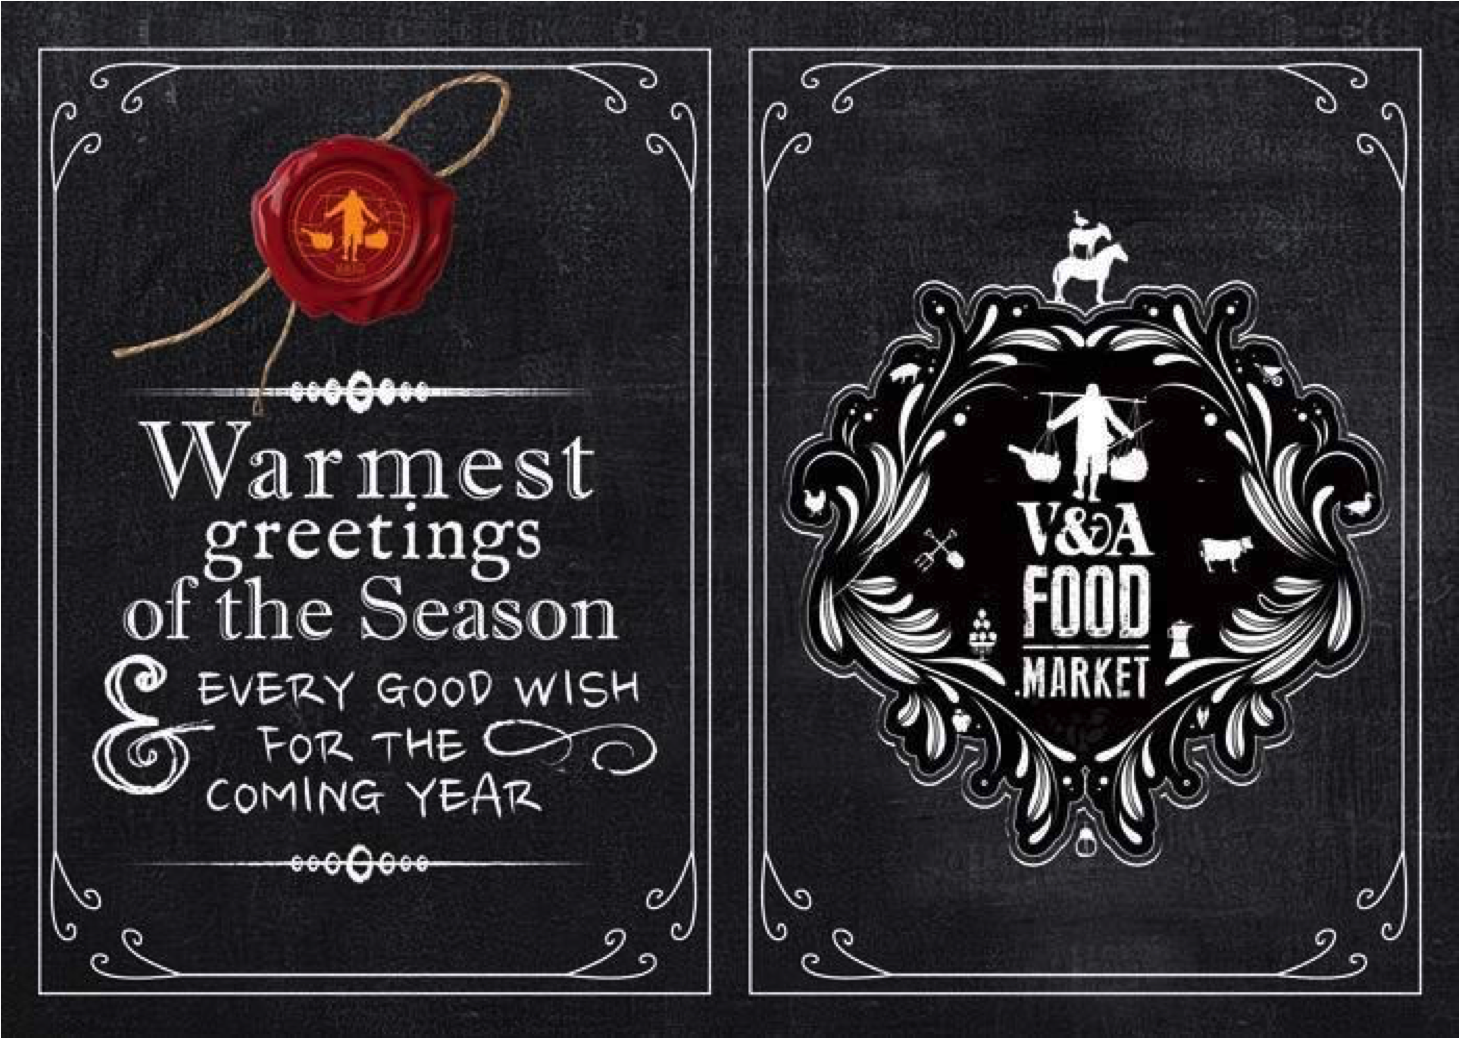 Seasons Greetings From All Of Us At The Waterfront Food Market